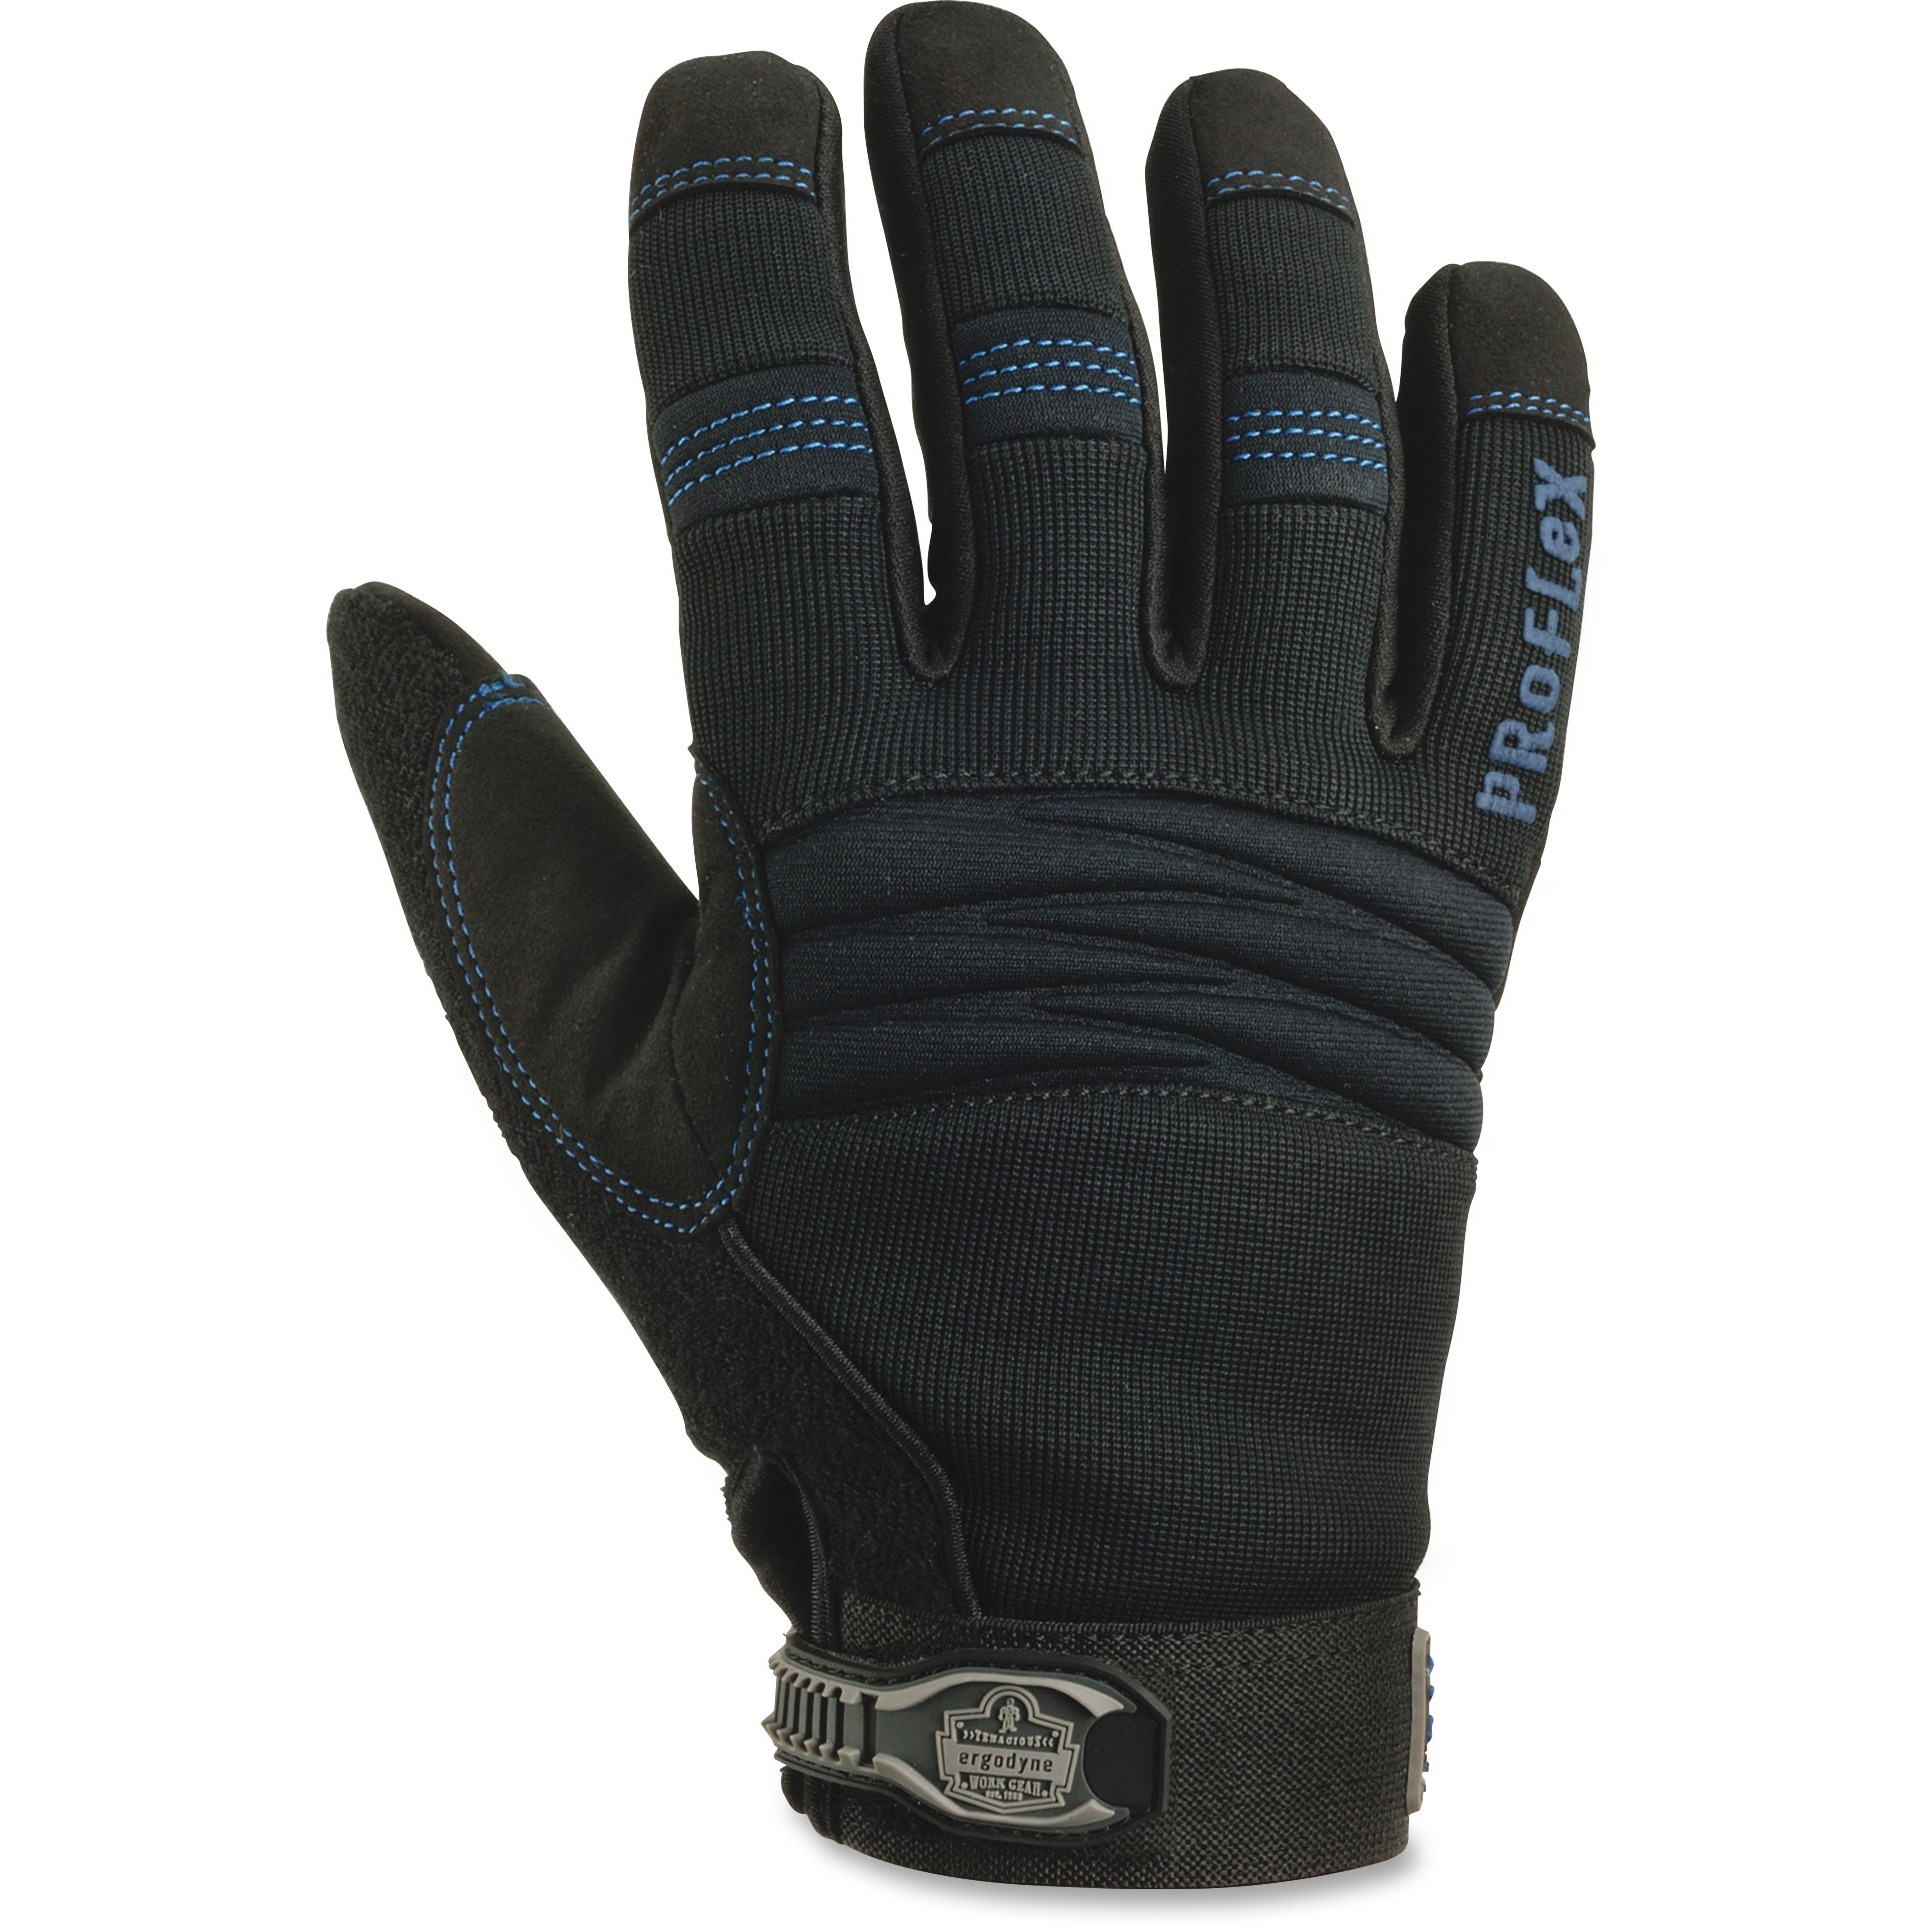 ProFlex Thermal Waterproof Utility Gloves, Black, 2 / Pair (Quantity)